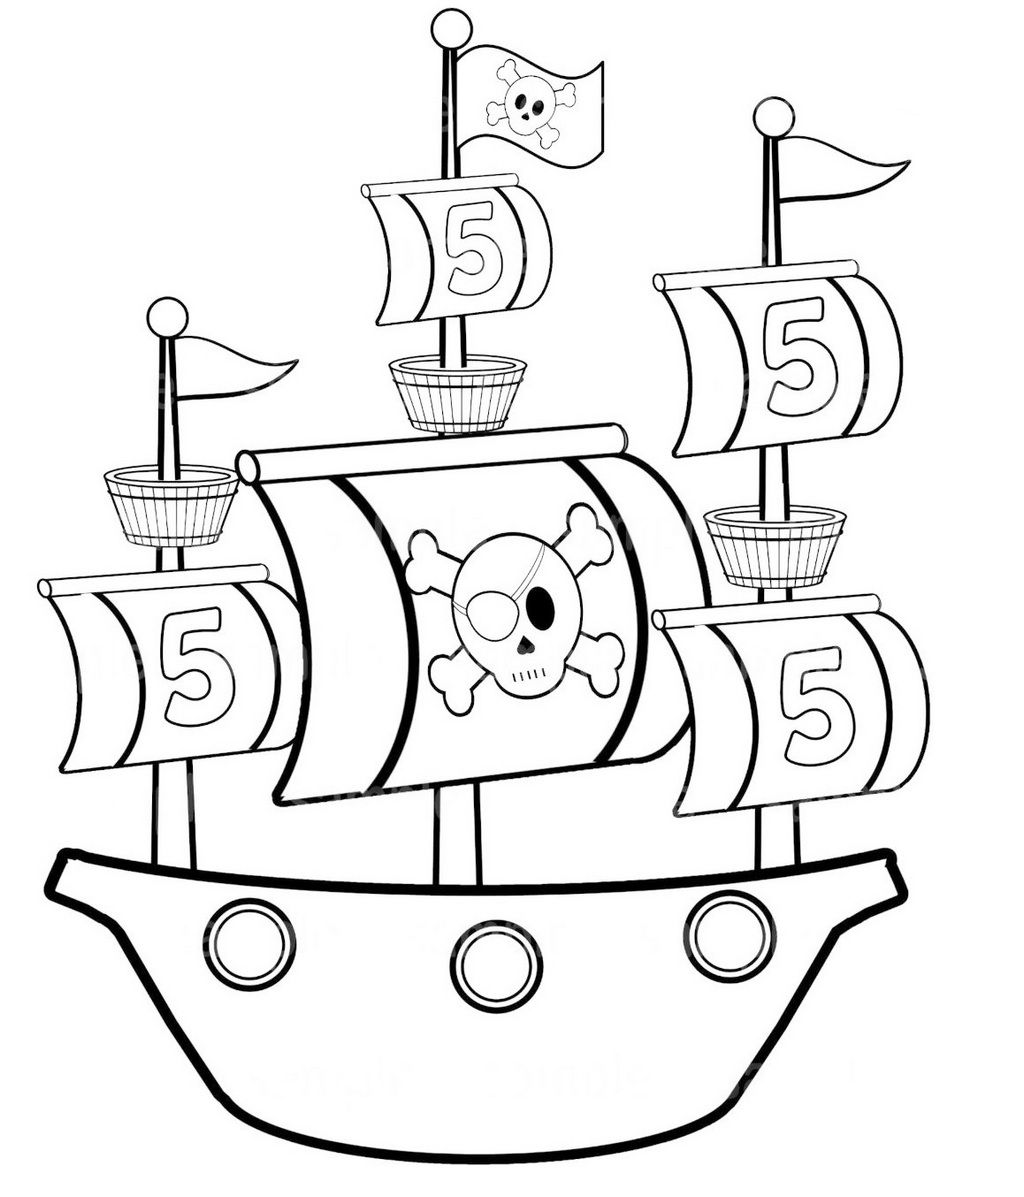 Pin By Bineesha Jithin On Prrdlohy Pirate Coloring Pages Pirate Ship Coloring Pages [ 1197 x 1024 Pixel ]